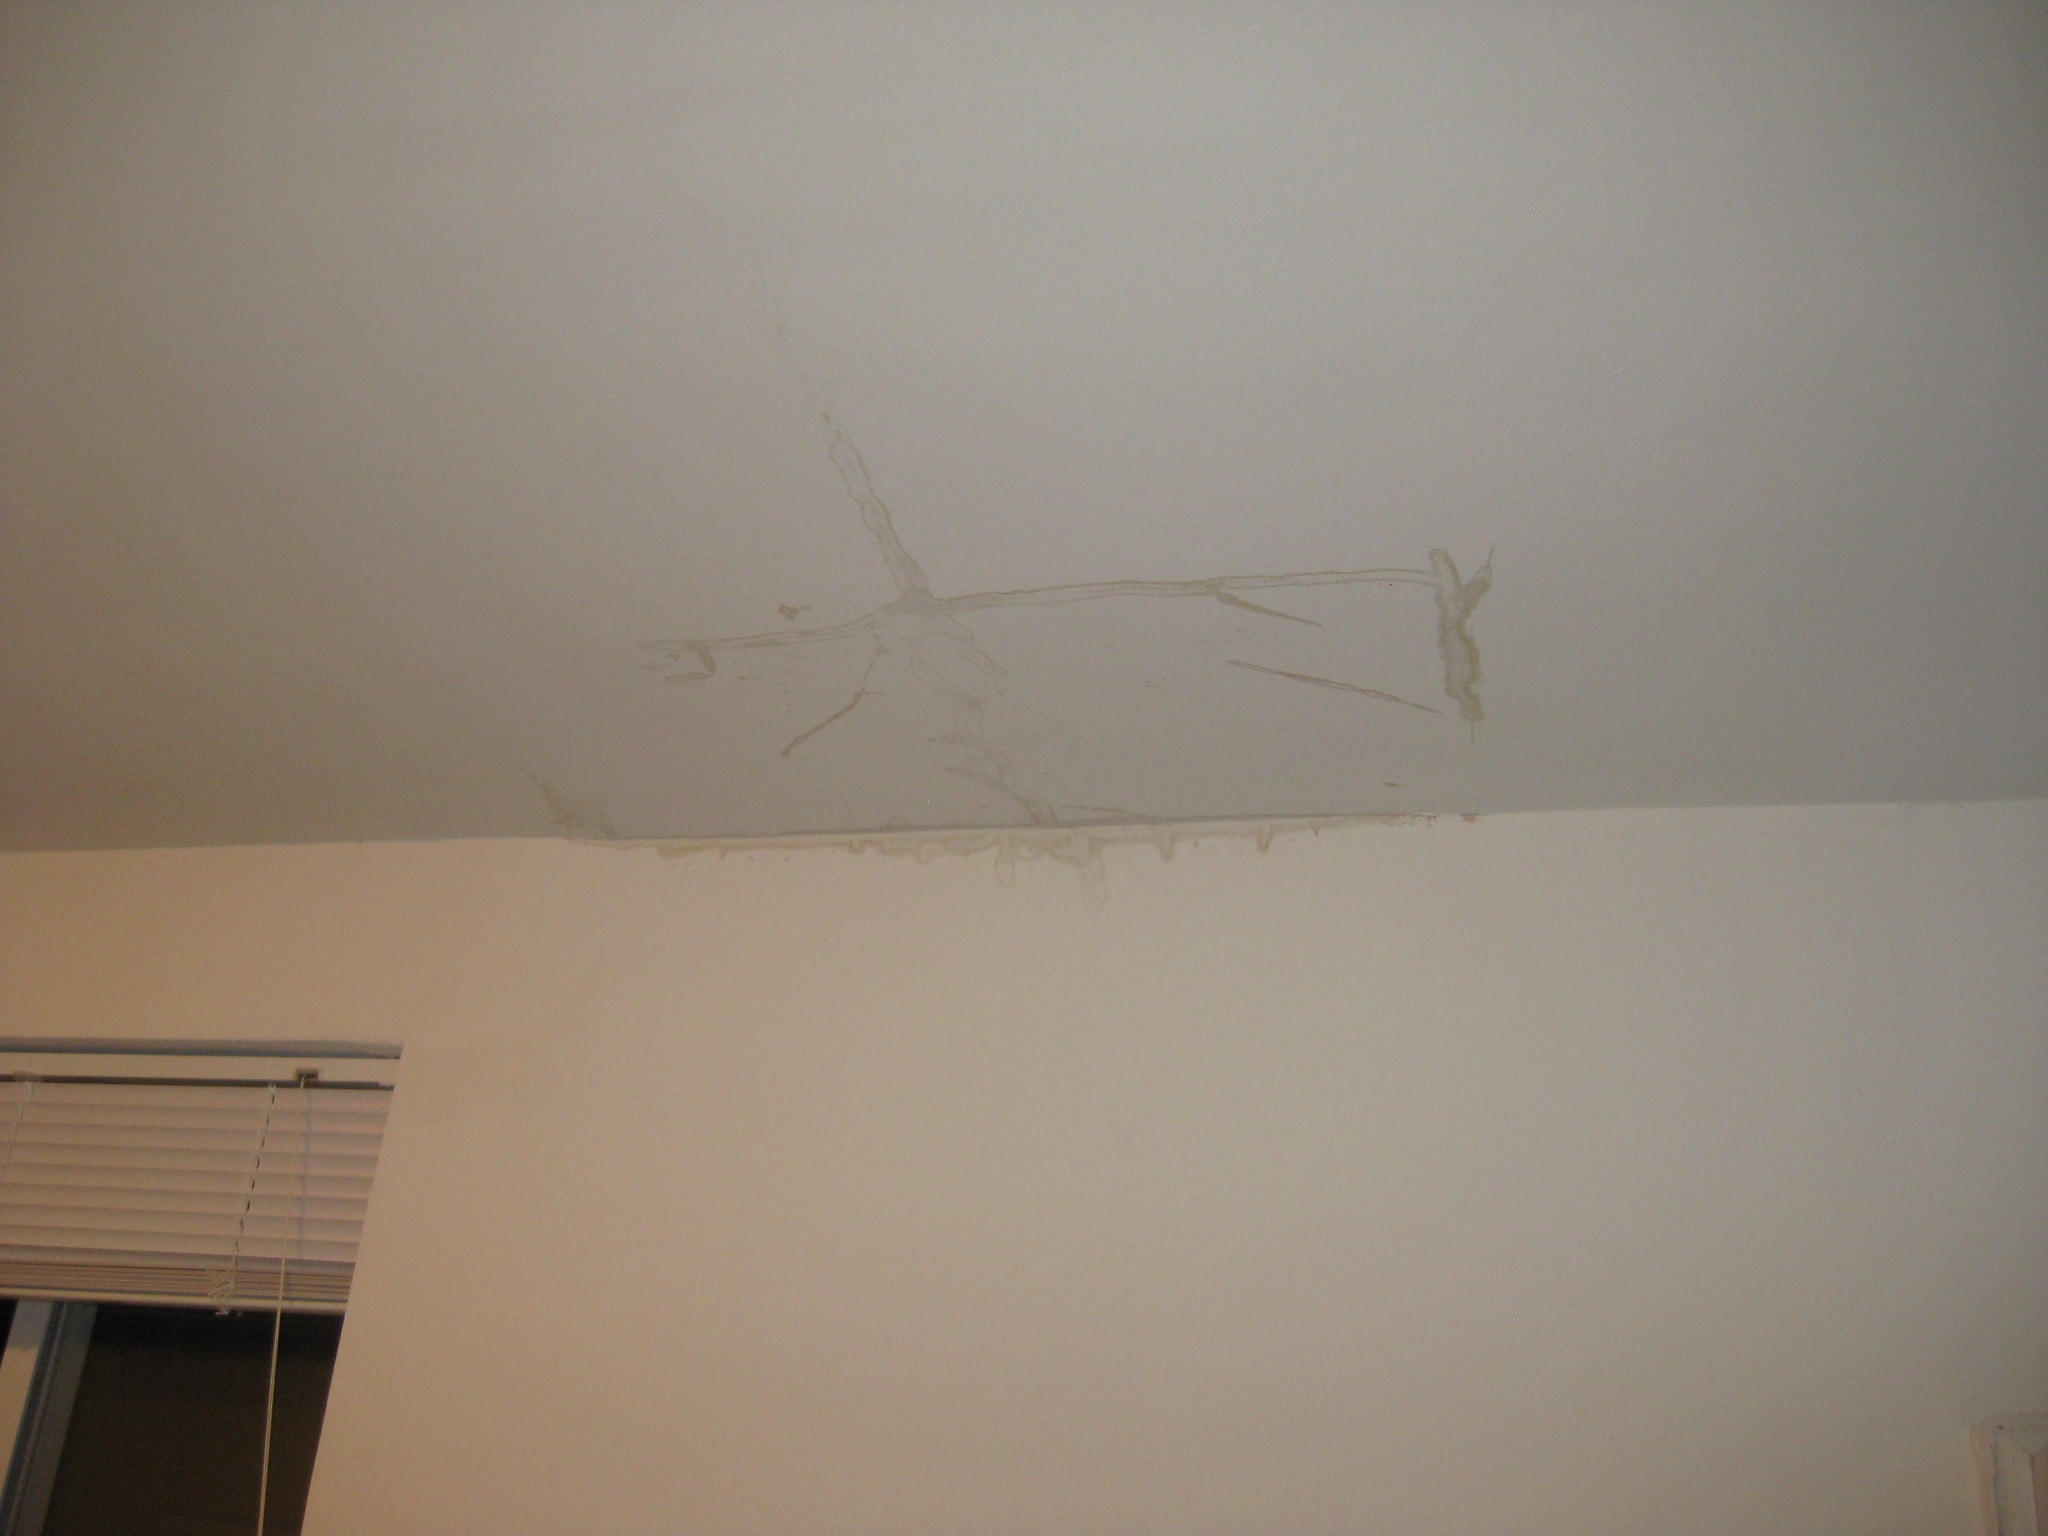 How To Fix A Leaking Ceiling In An Apartment